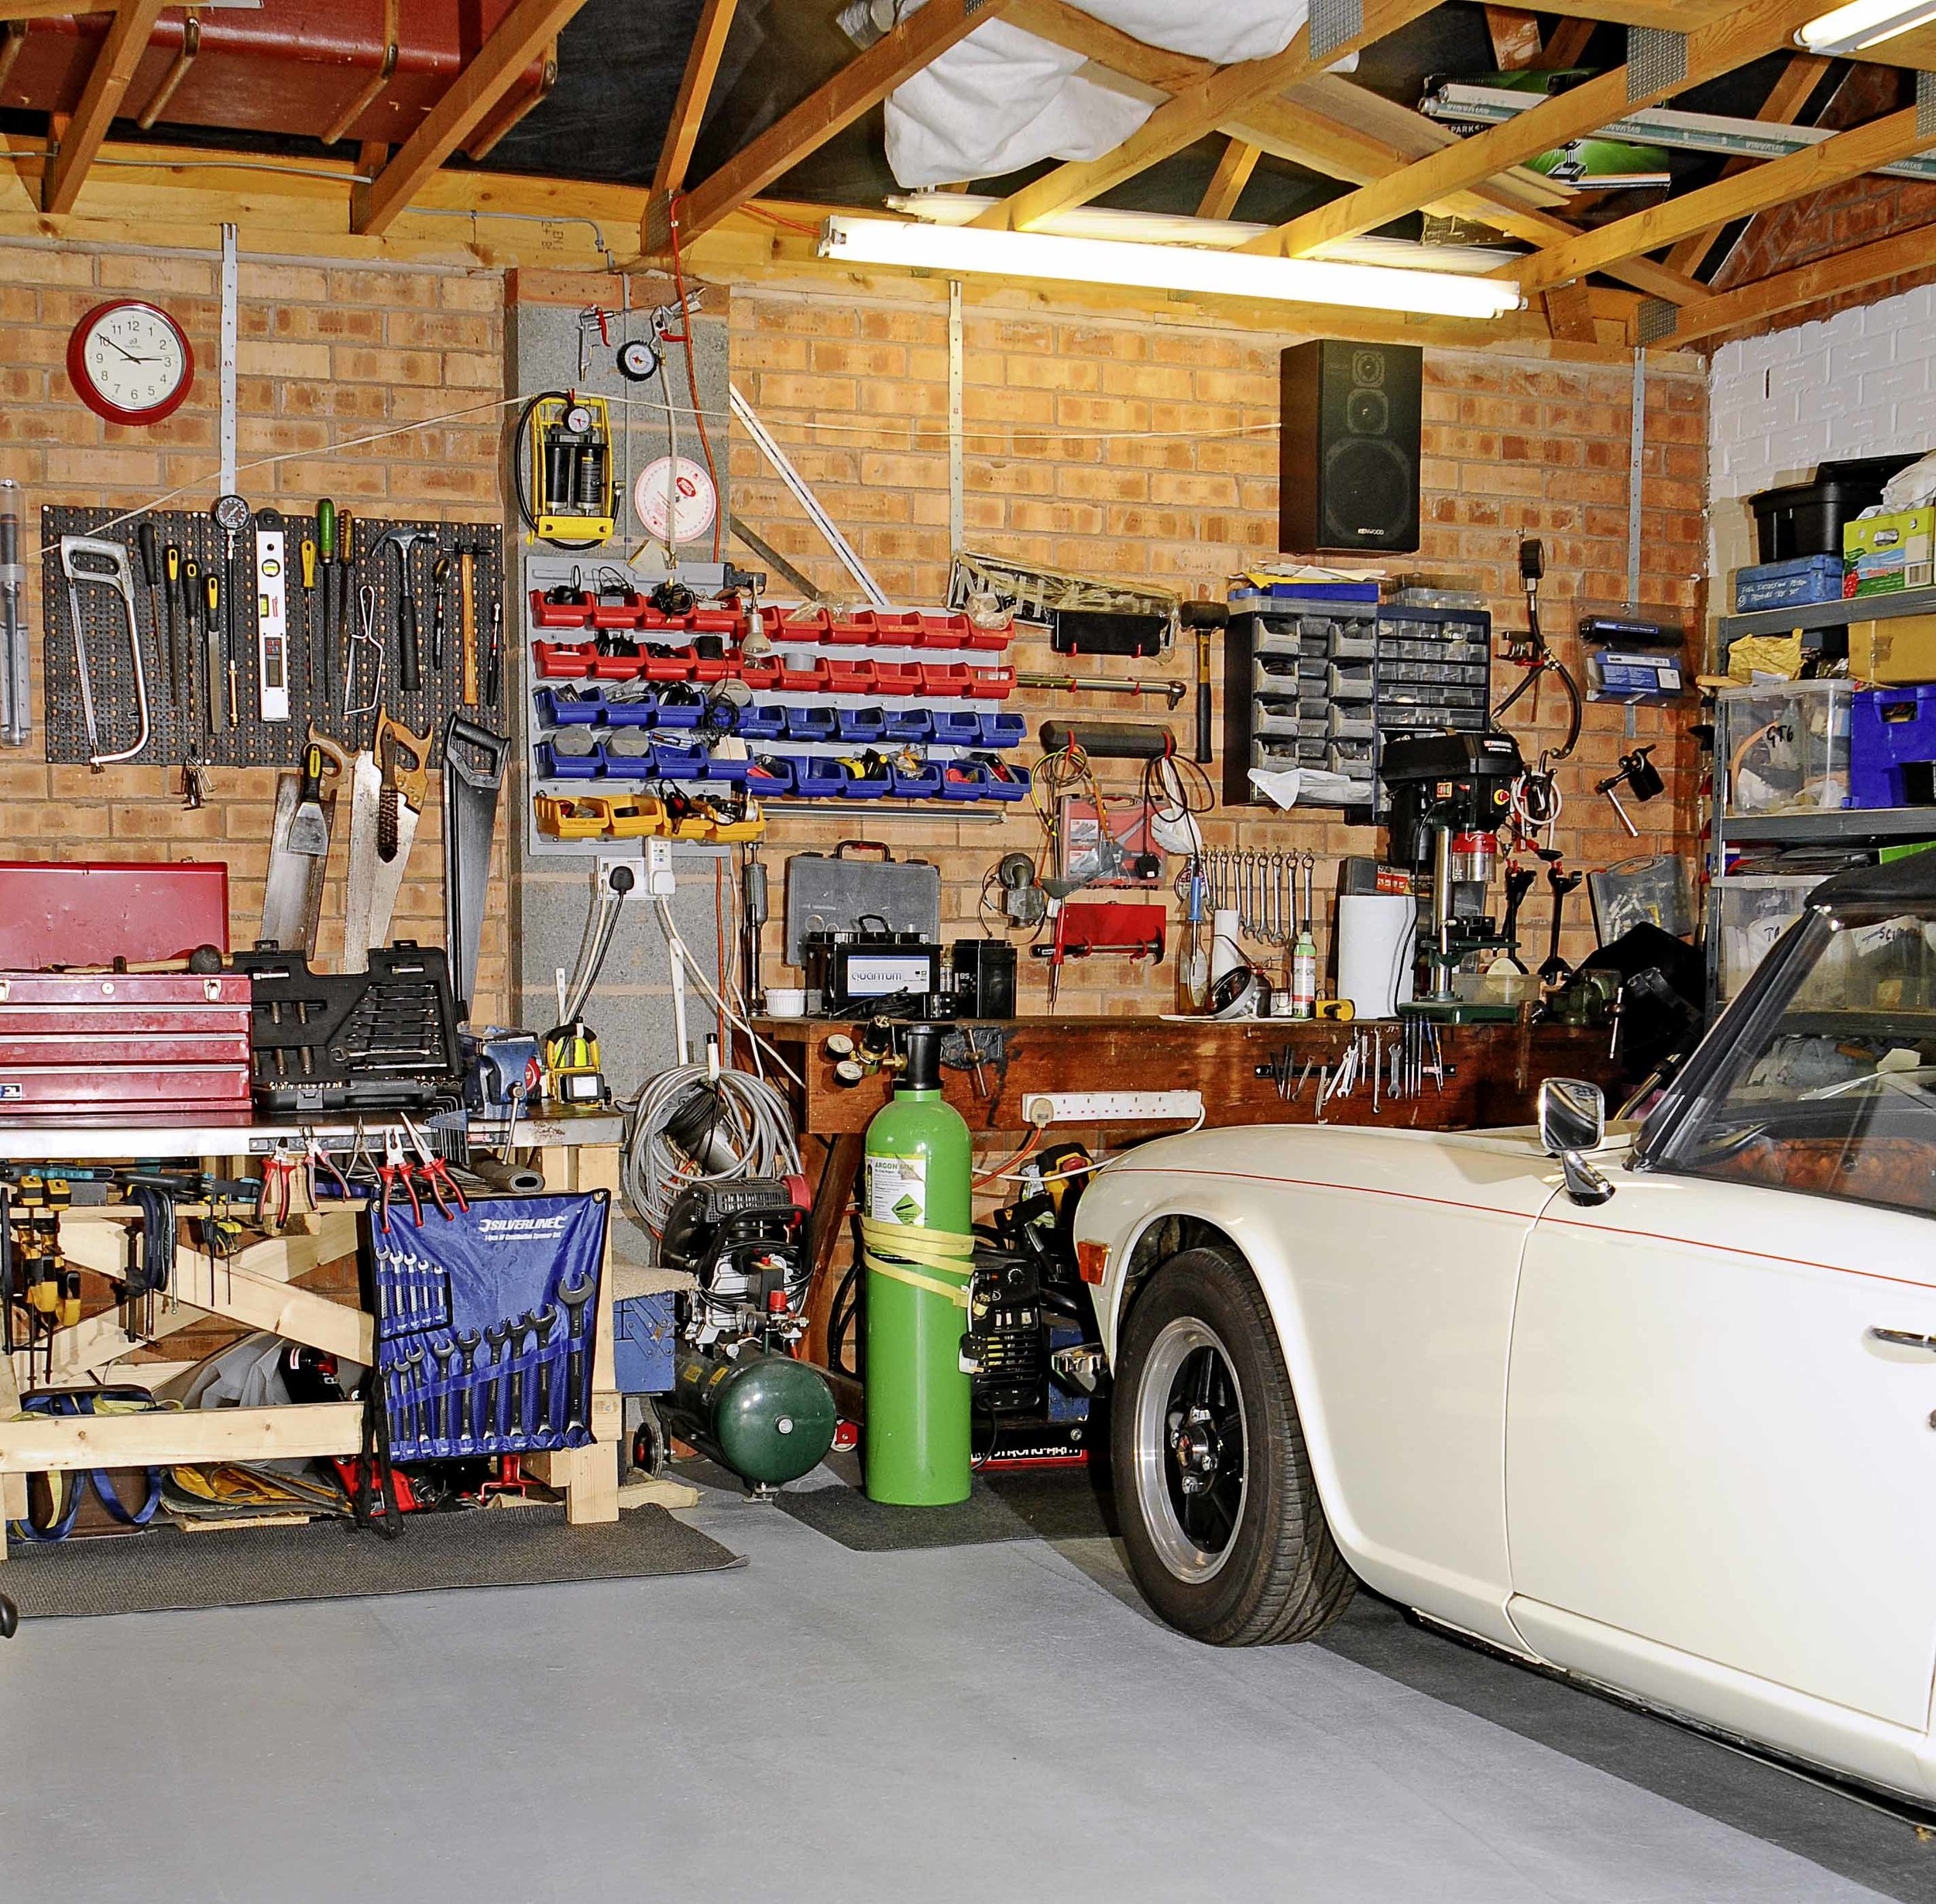 Most of us have to make do with a domestic garage as a workshop. Damp, cramped, cluttered and dusty, it's a far from ideal environment in which to carry out the jobs required to keep a classic car on the road. It doesn't have to be this way! A few hundred pounds and a couple of weekends can transform a modest garage into a luxurious micro-workshop. We show you how in the latest issue…